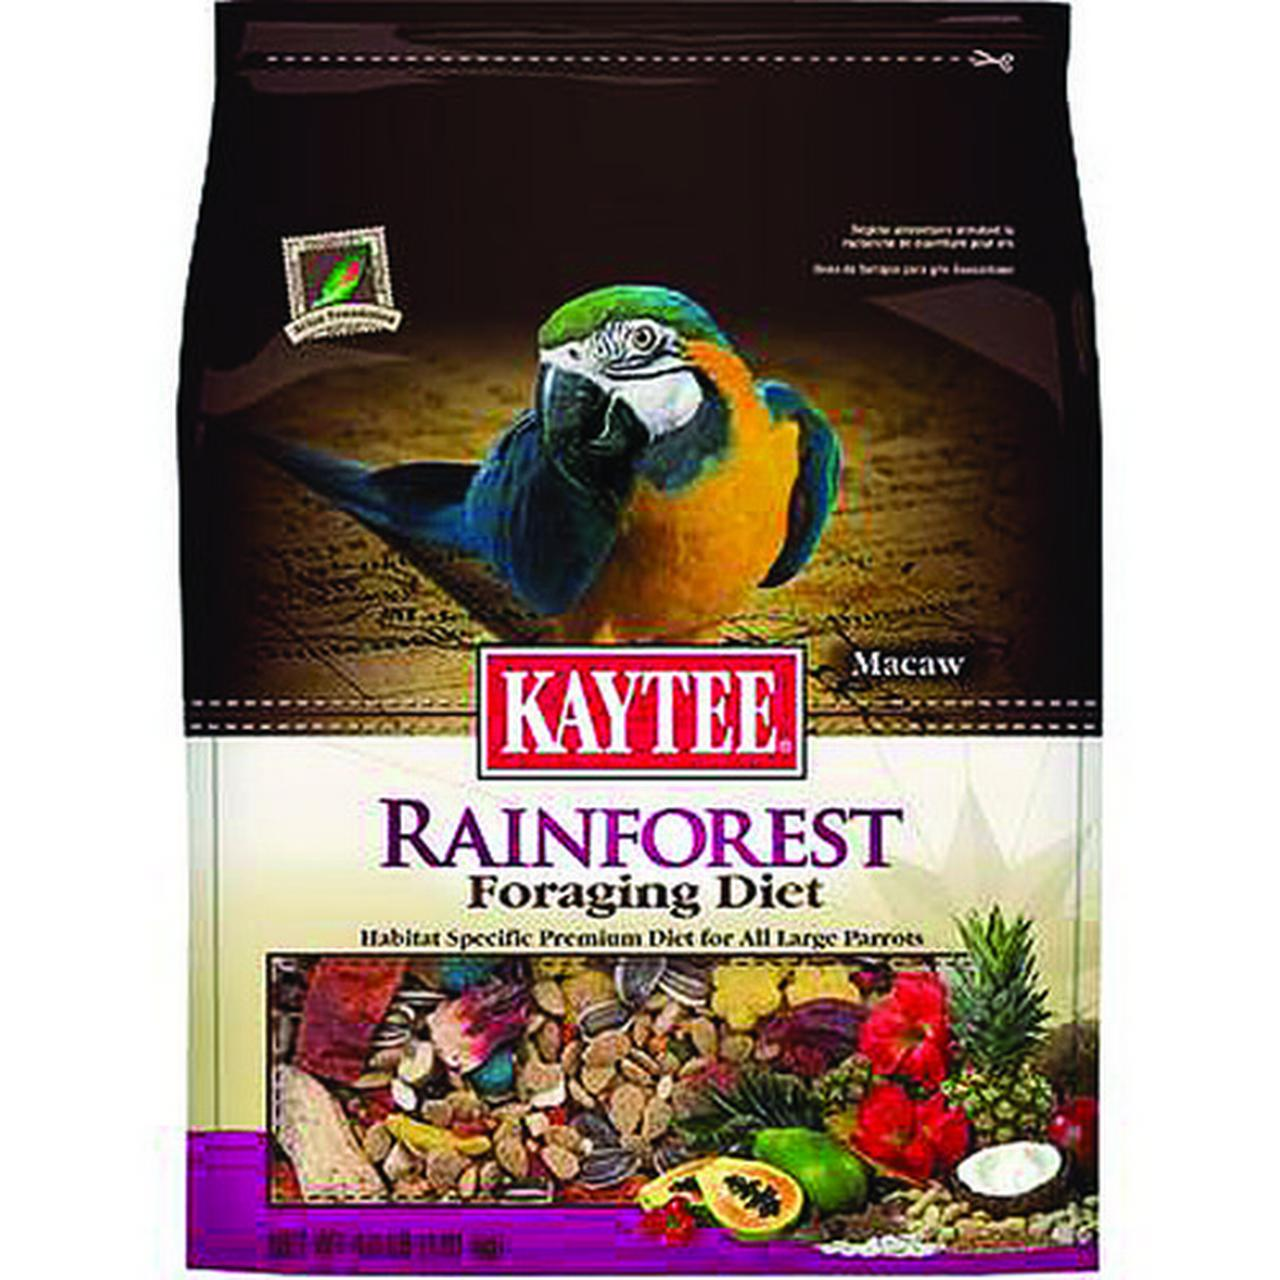 Kaytee 100510208 Foraging Diet Rainforest - Macaw